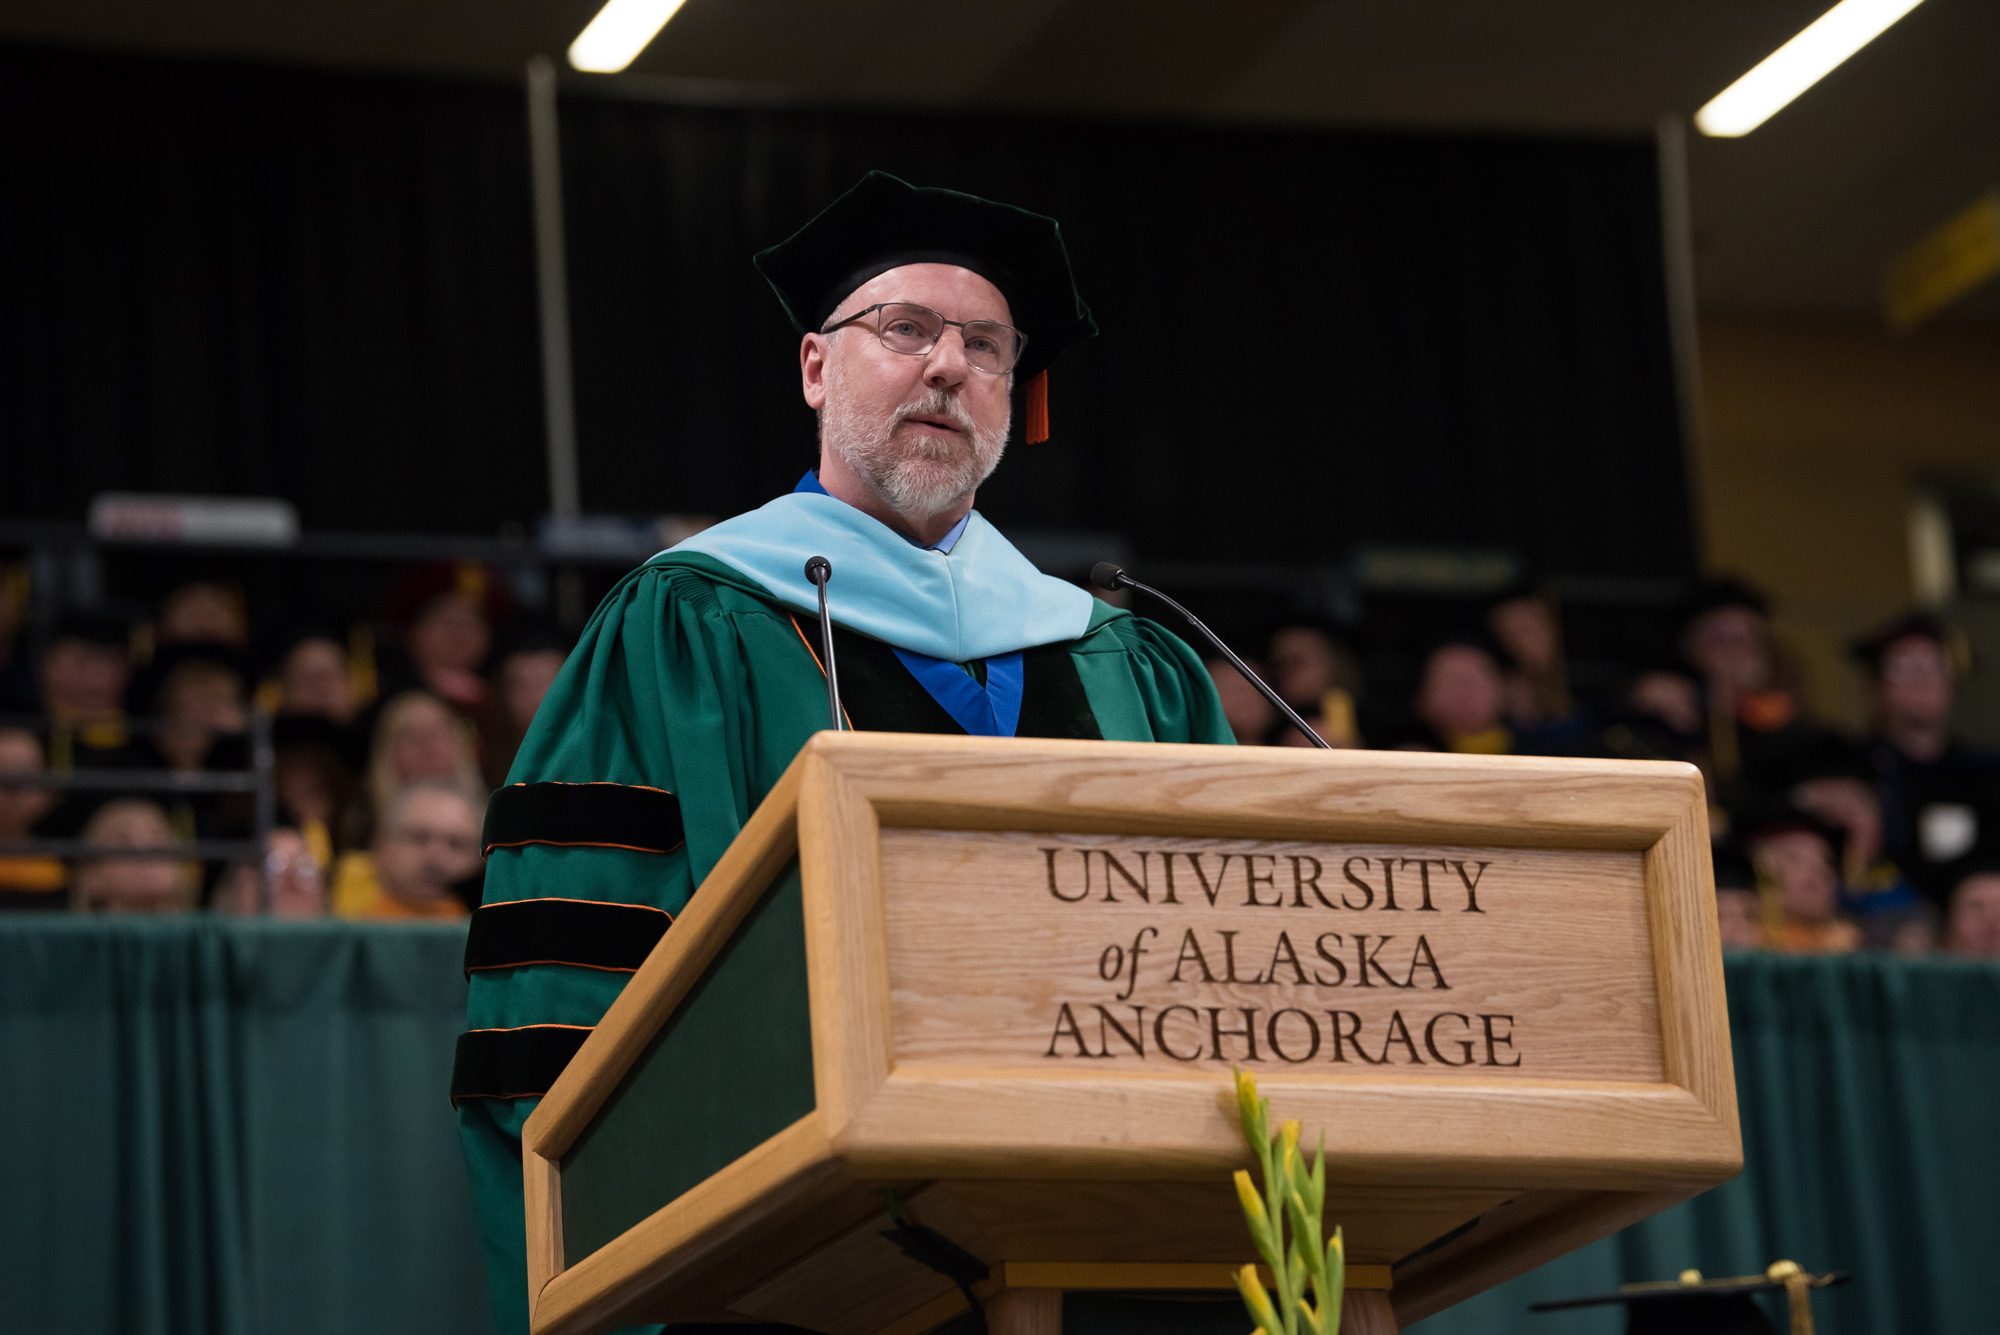 Vice Chancellor for Student Affairs Bruce Schultz, who will begin a new role as UAA's interim chancellor on Jan. 4, 2021, announces the commencement speaker during UAA's 2019 Spring Commencement at the Alaska Airlines Center.